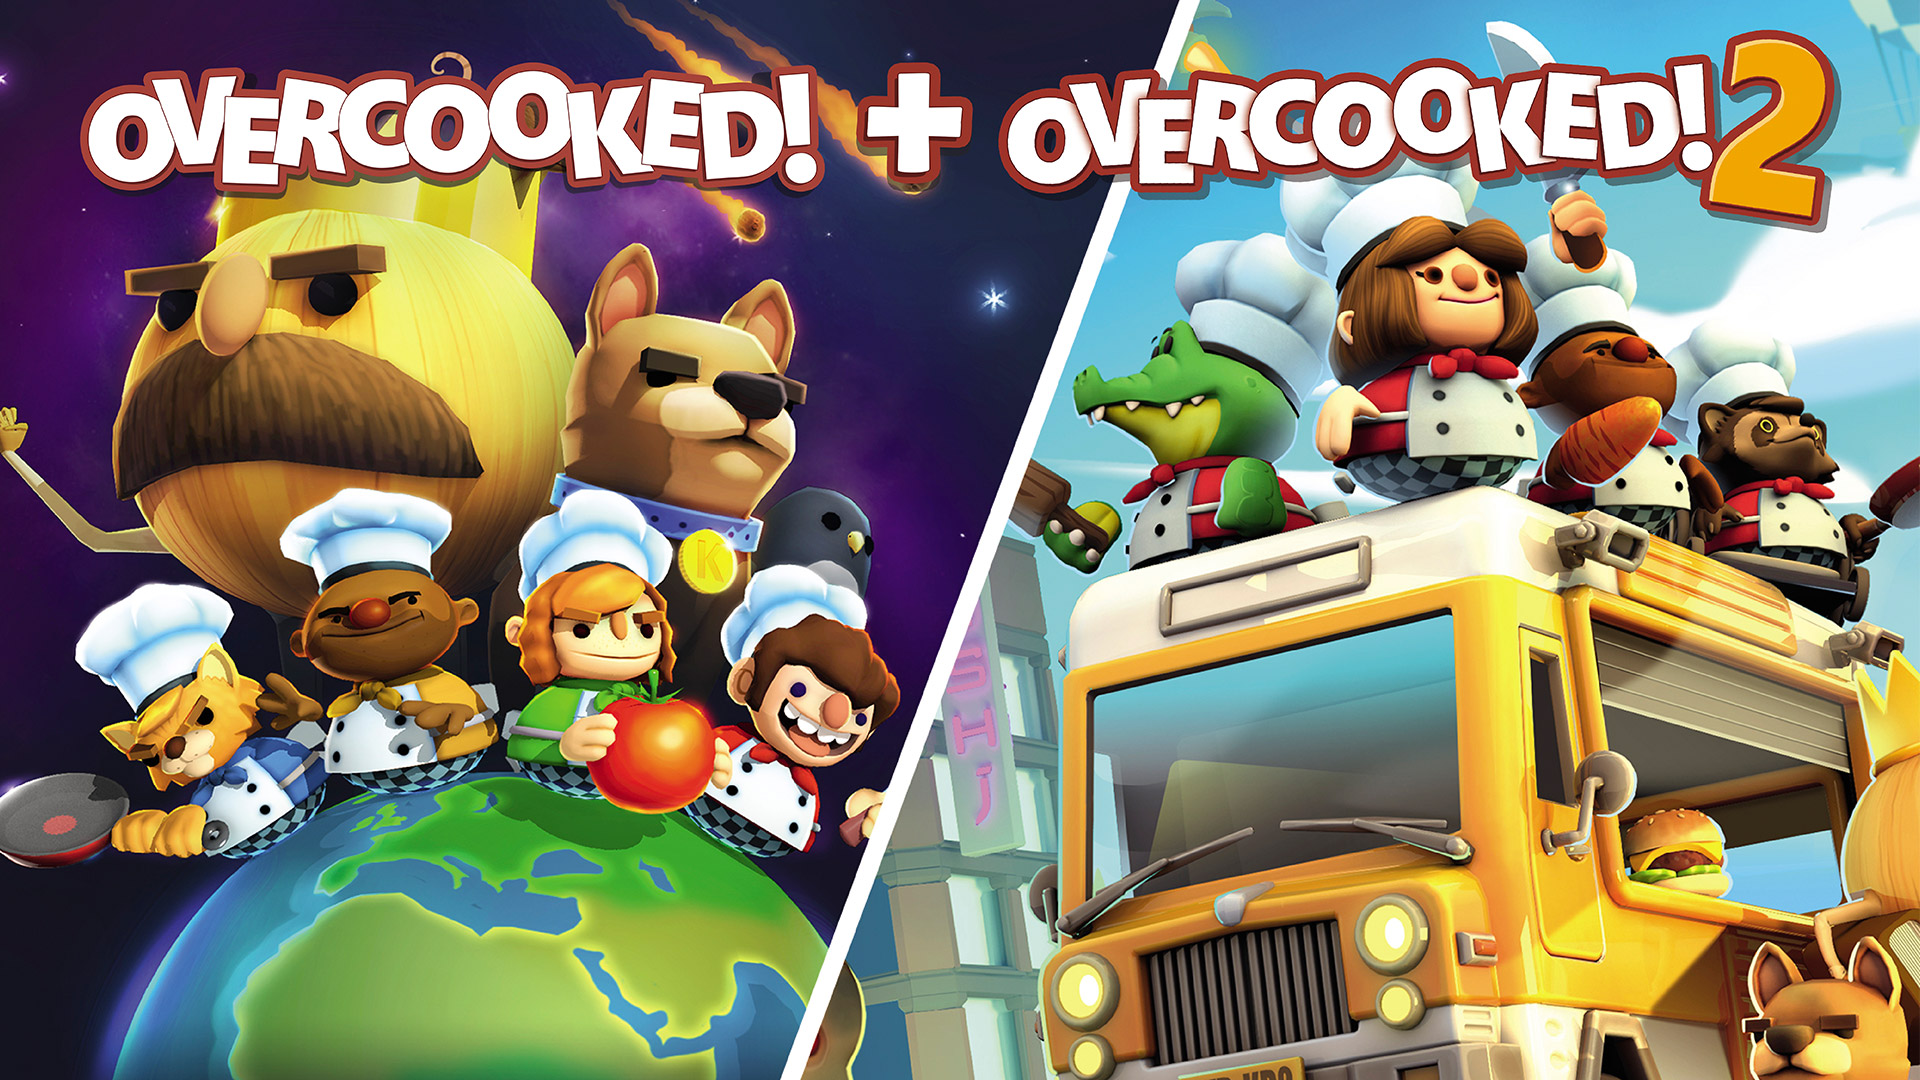 overcooked_artwork_reprographics_packshot.3